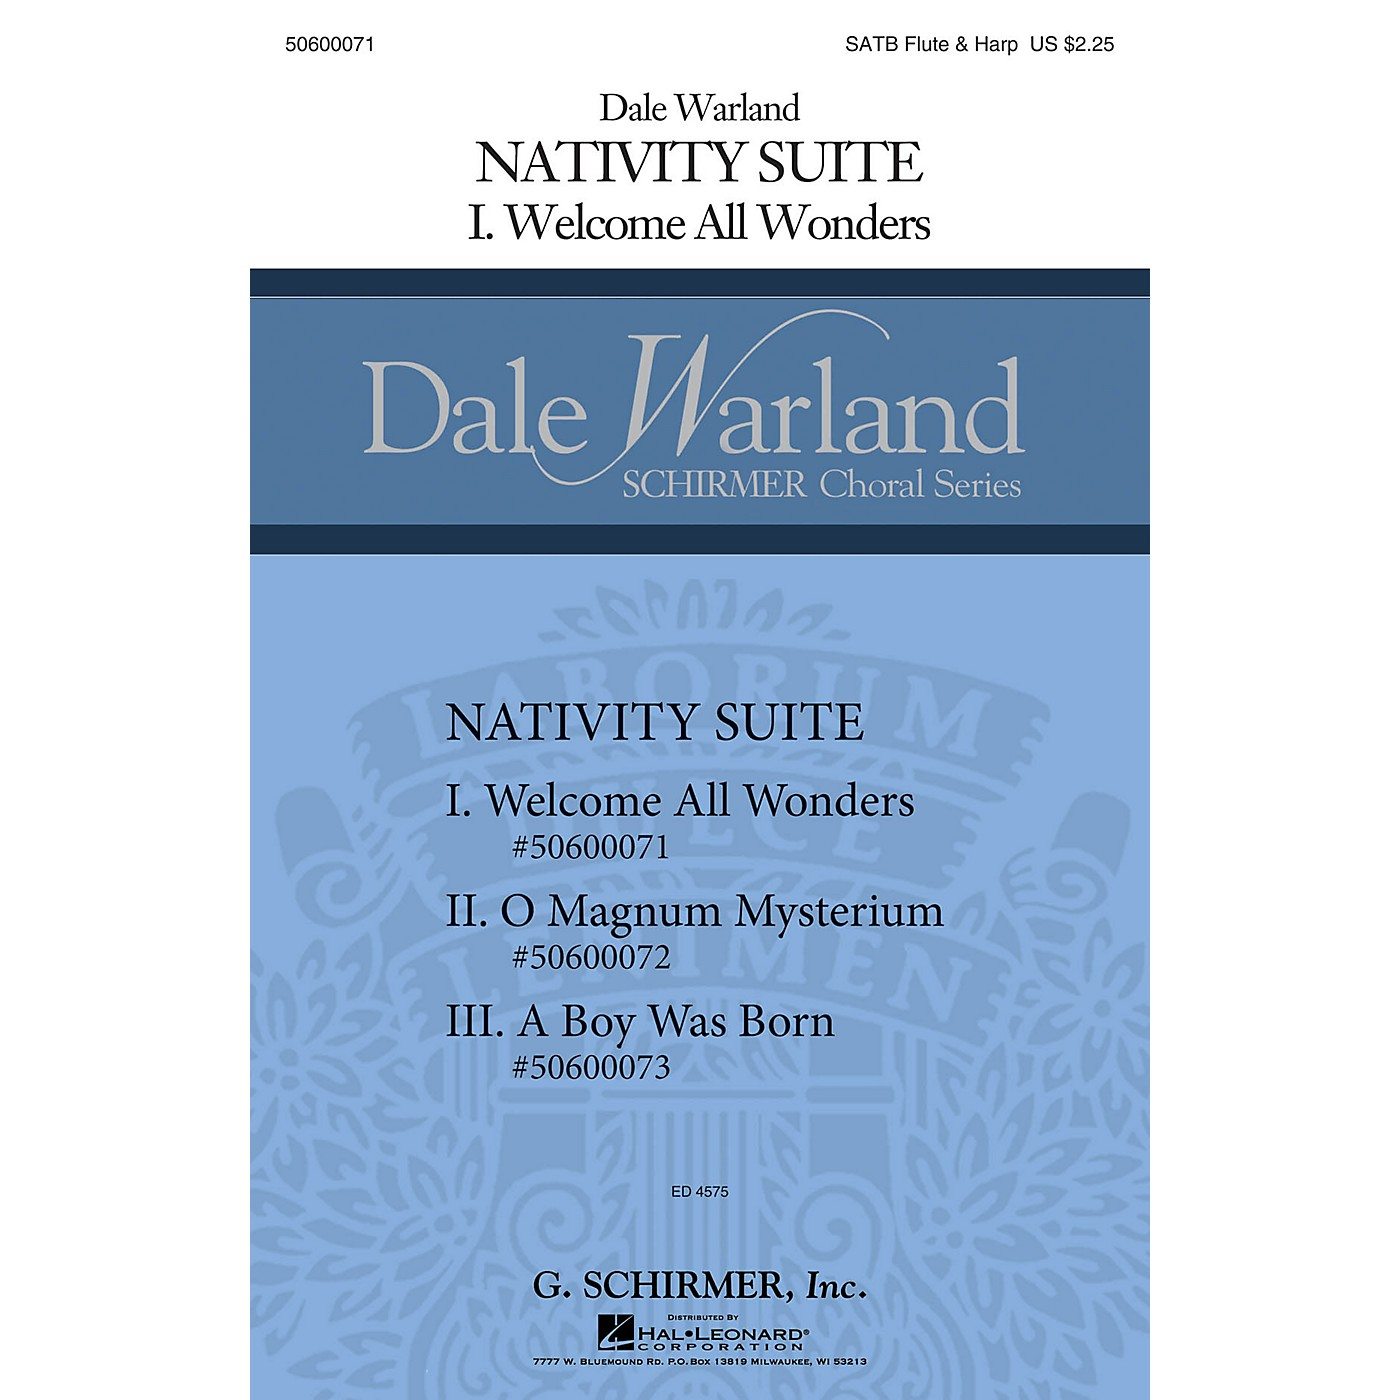 G. Schirmer Welcome All Wonders (Dale Warland Choral Series) SATB with flute & harp composed by Dale Warland thumbnail